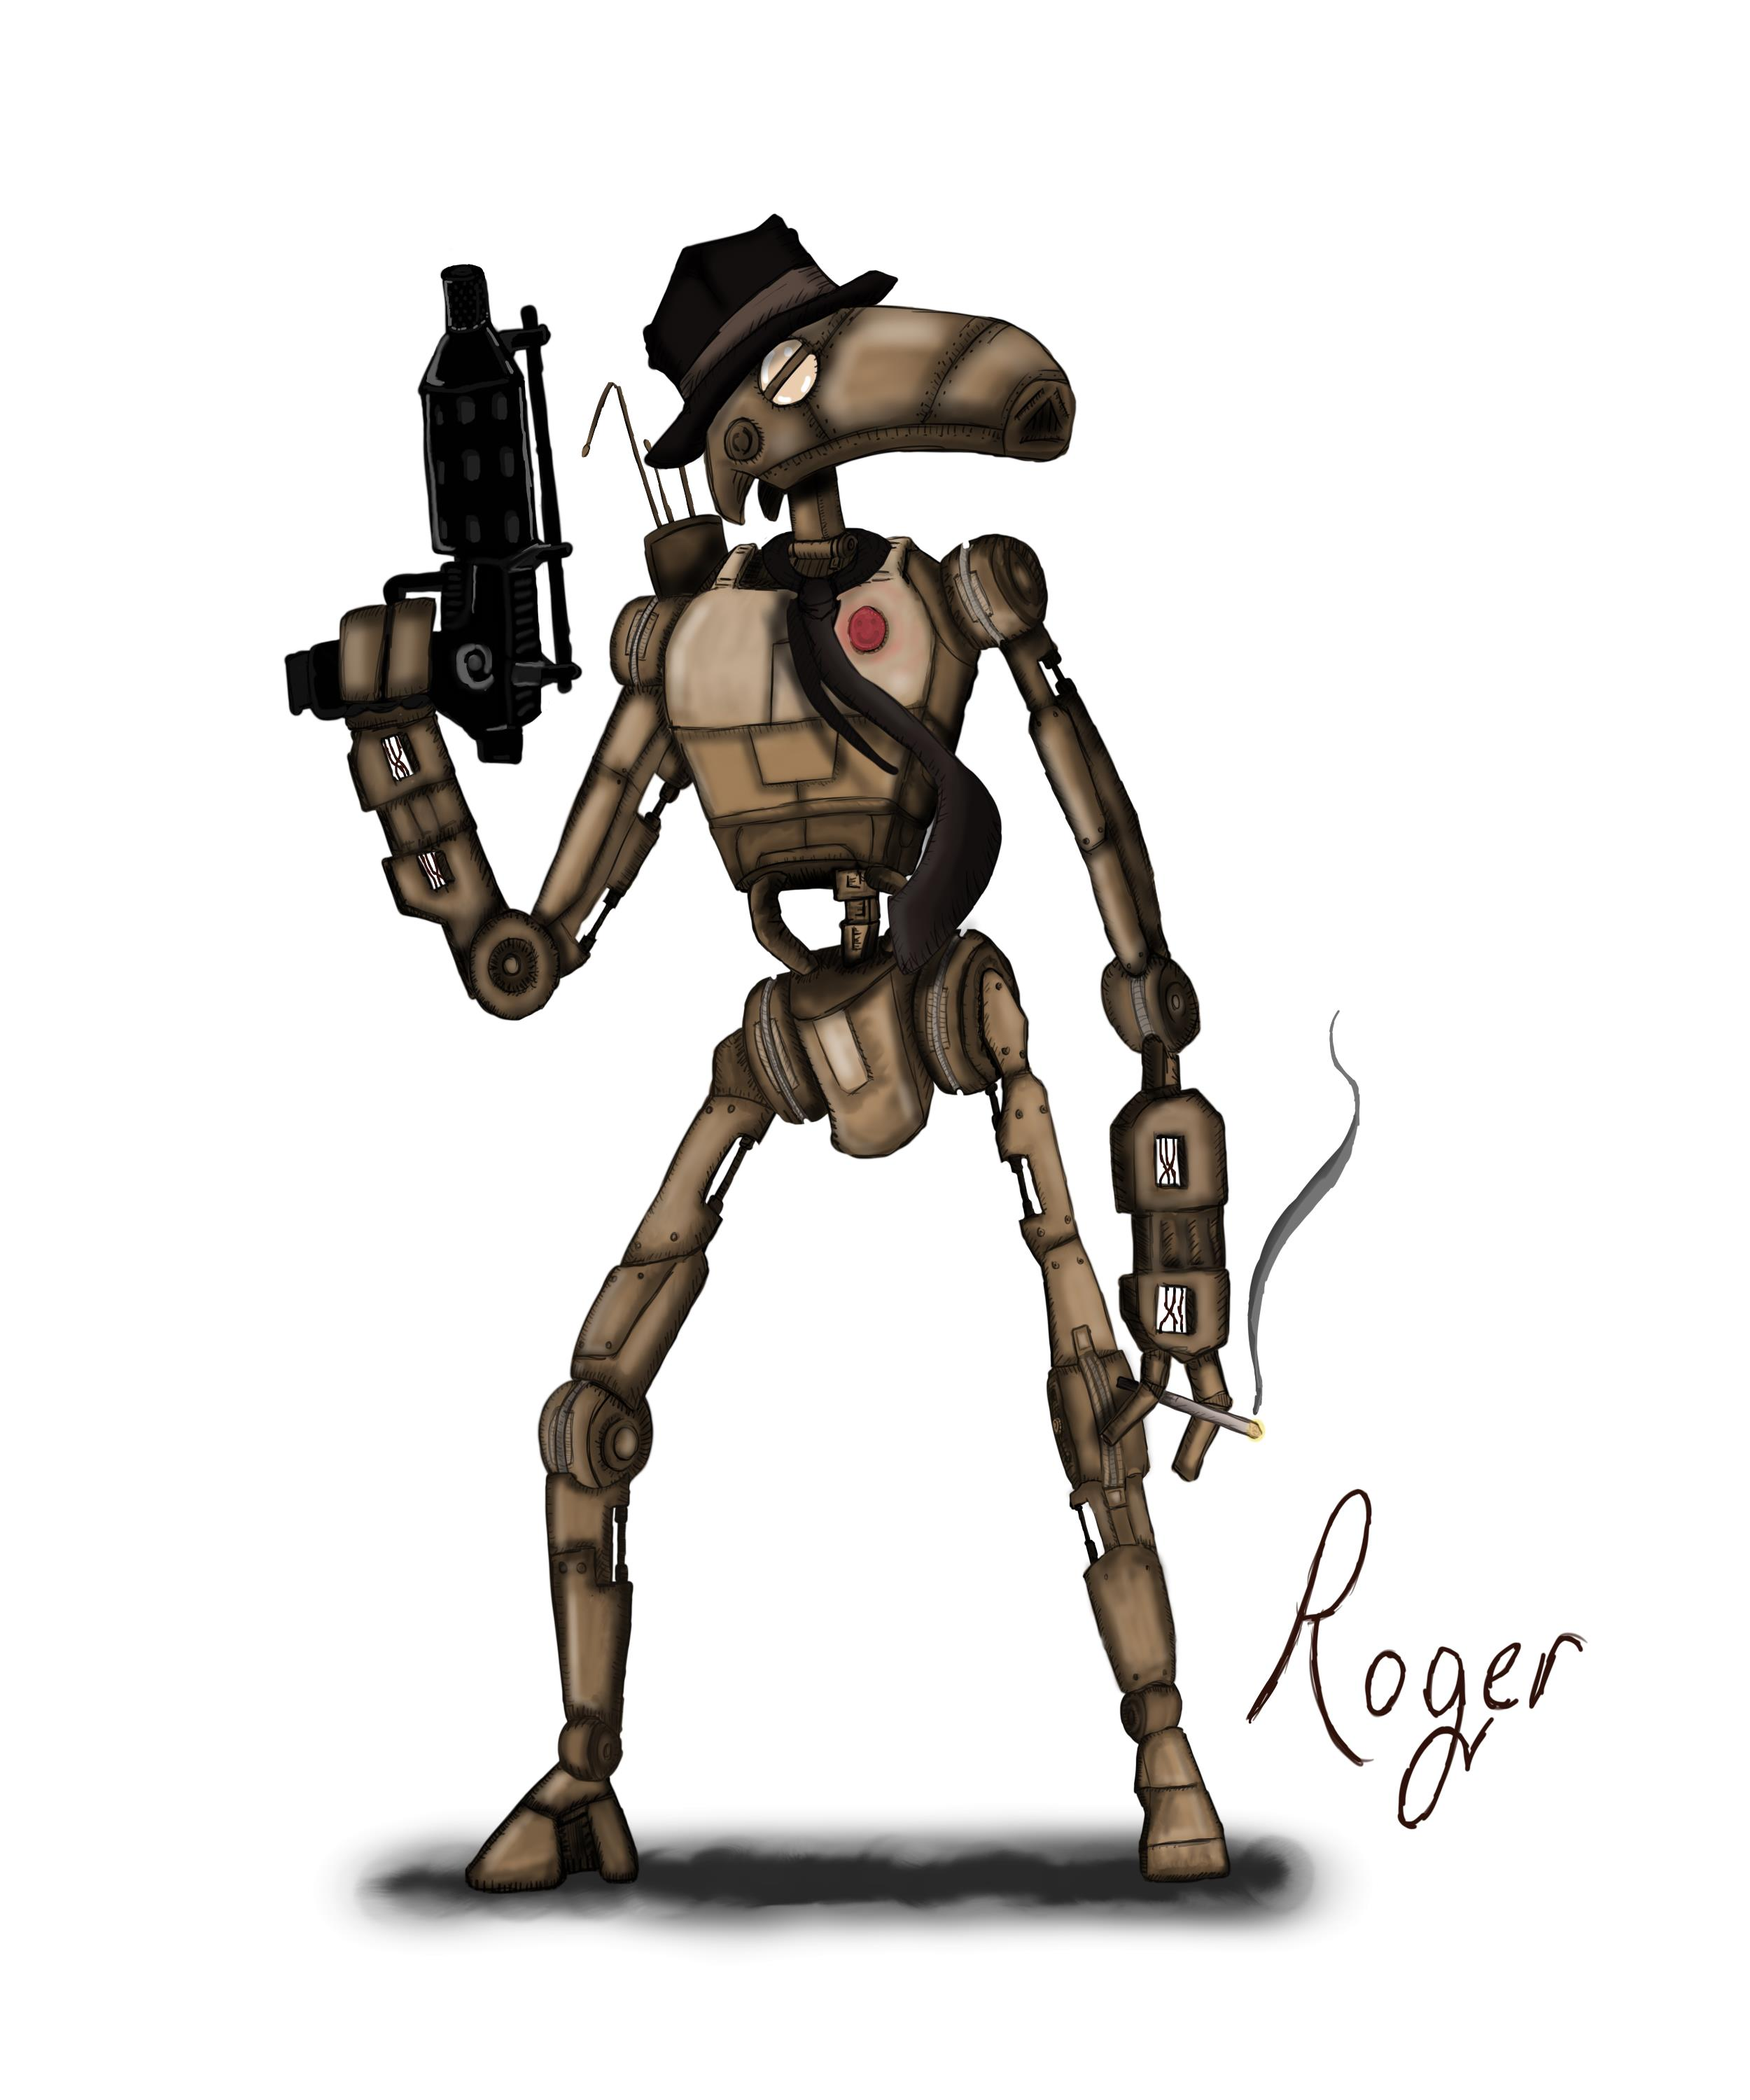 Roger the droid